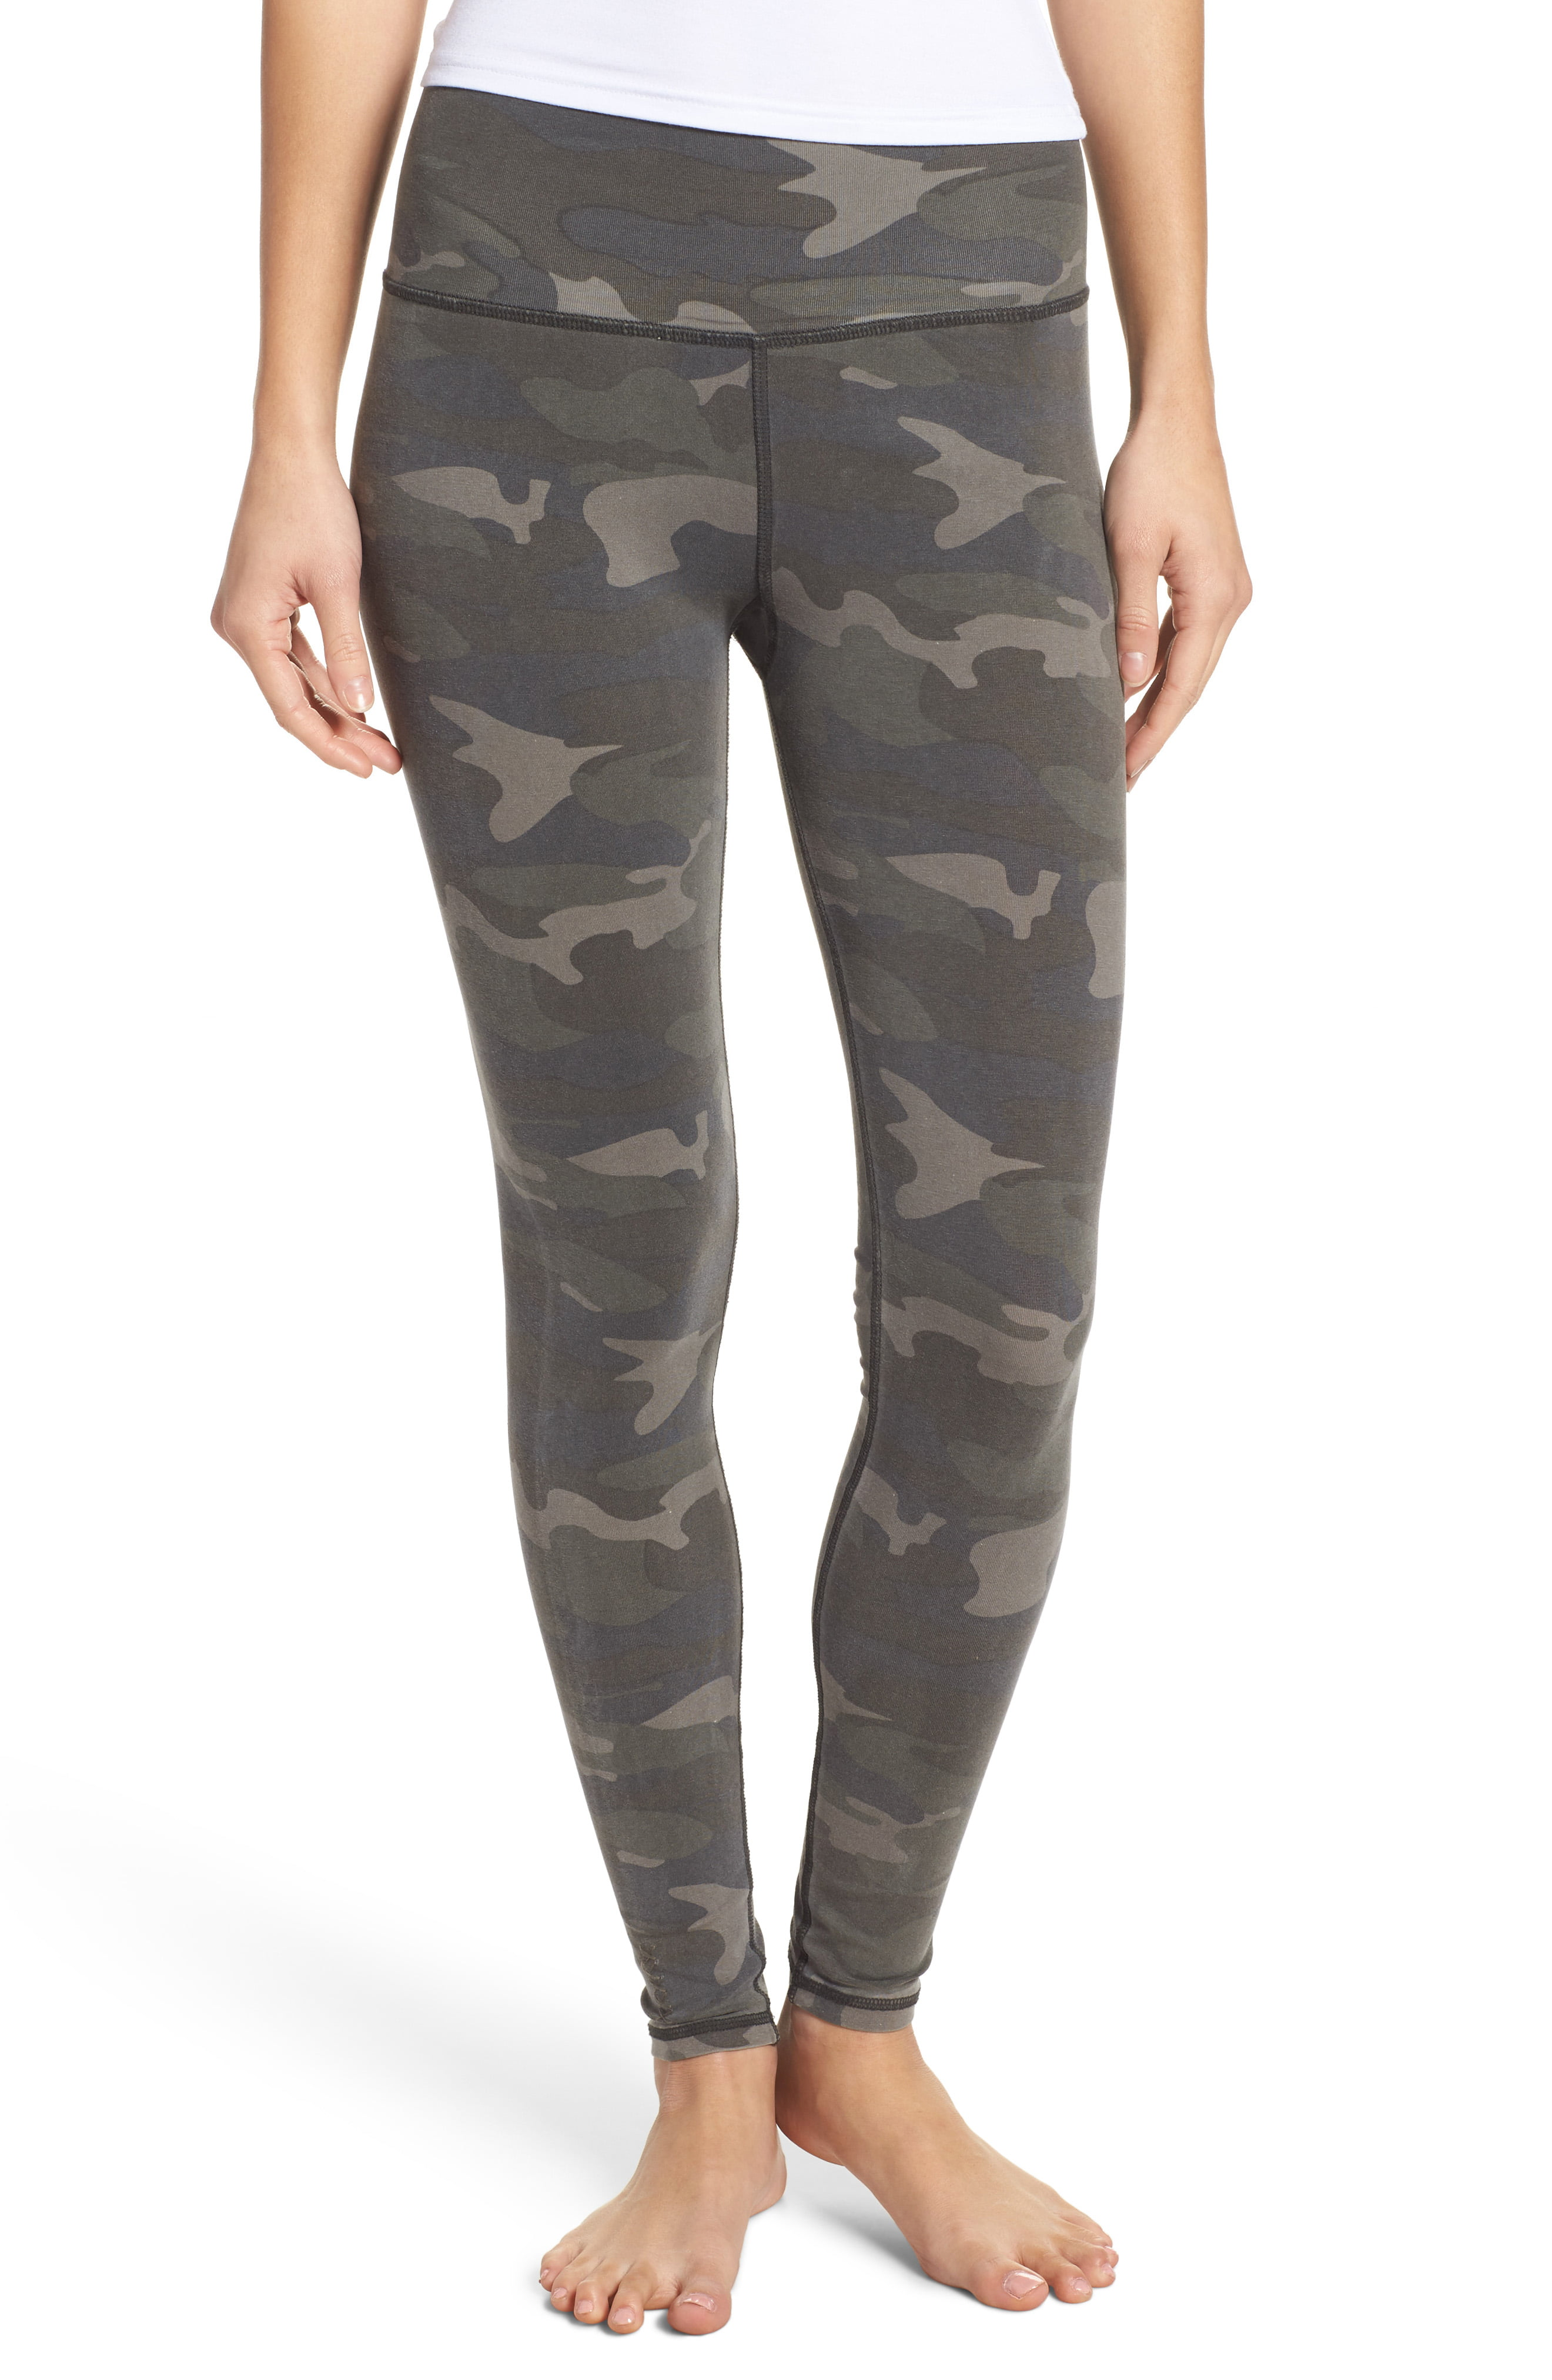 44435797fb5b50 Women's Ragdoll Camo Lounge Leggings, Size Small - Green | Products ...